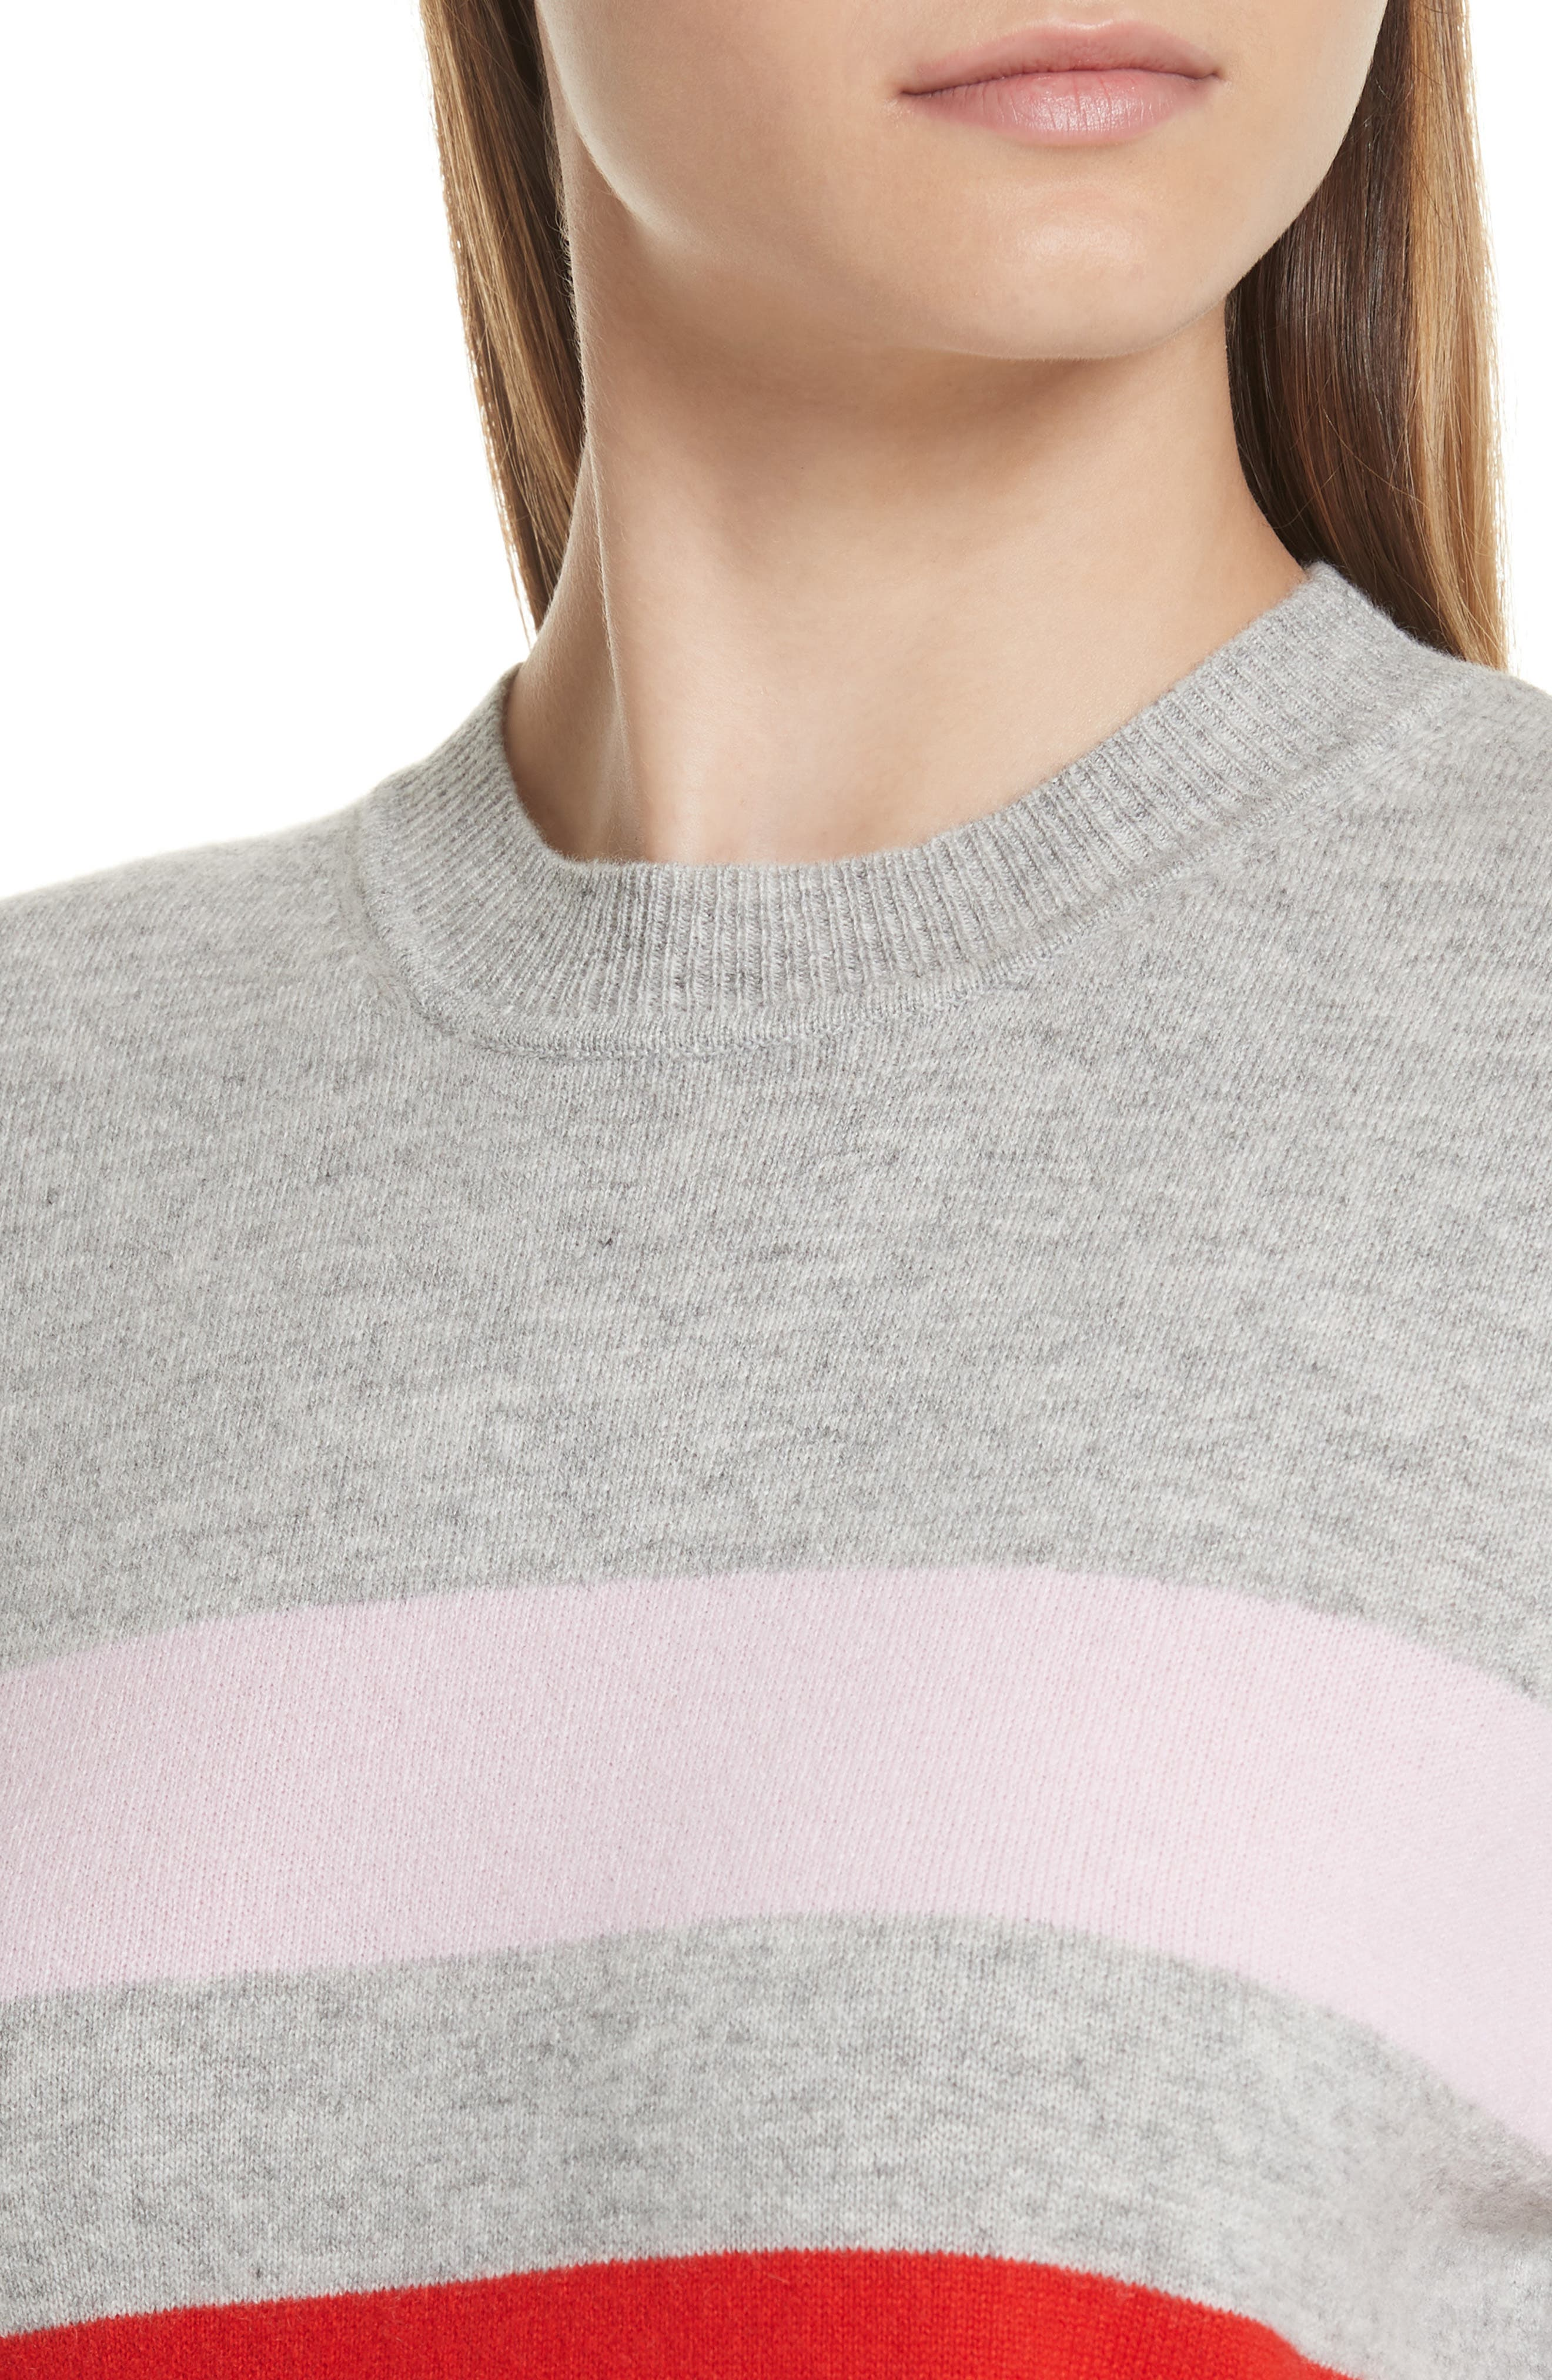 AAA Candy Stripe Cashmere Sweater,                             Alternate thumbnail 4, color,                             020